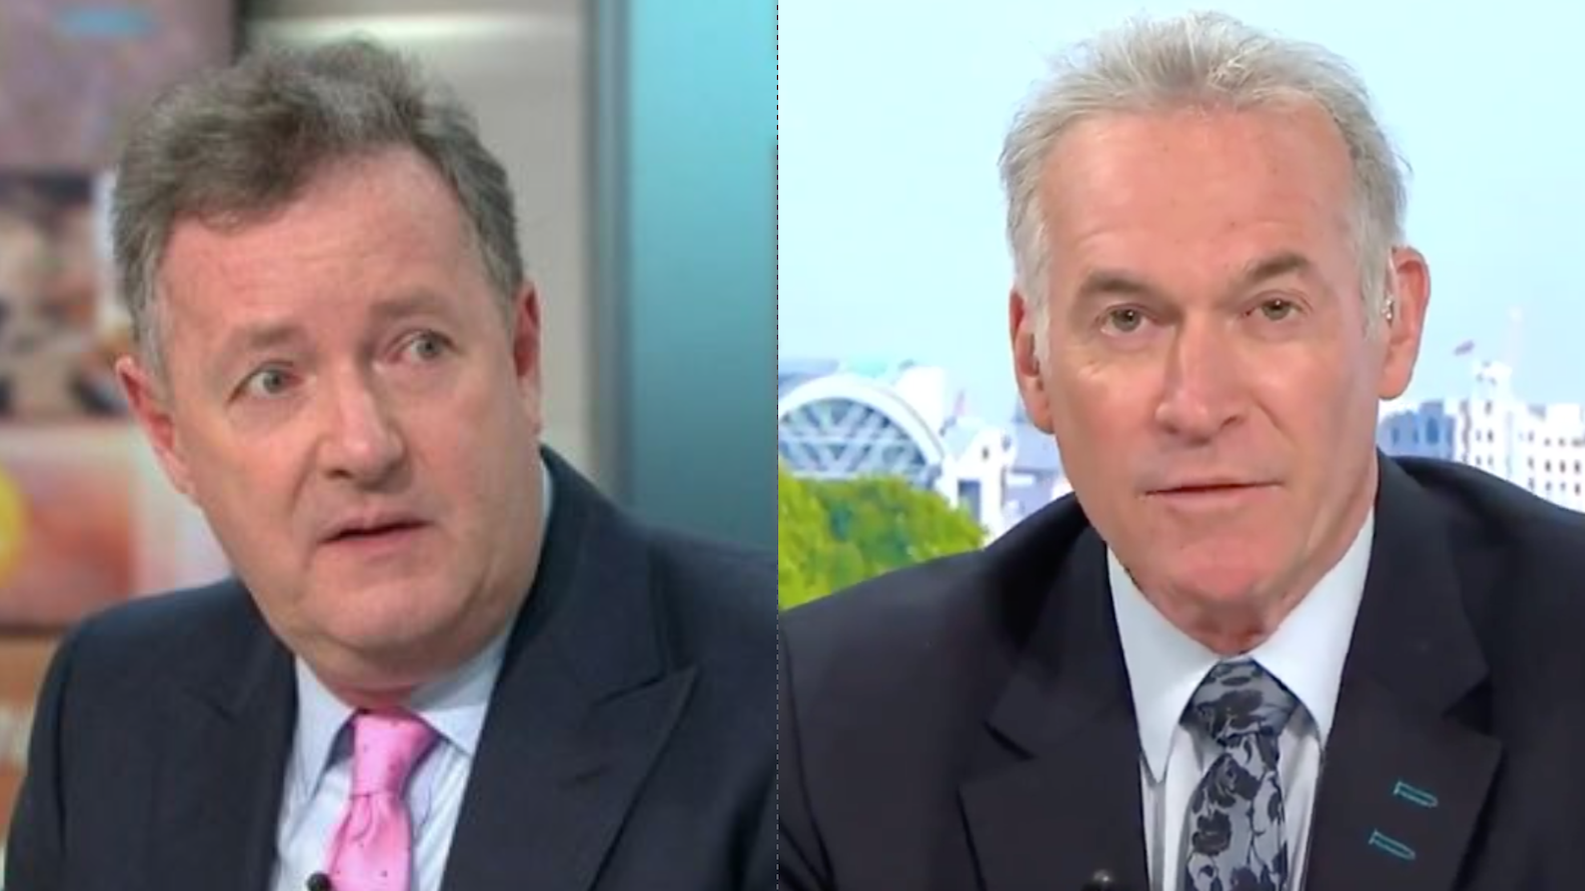 GMB fans turn on Dr Hilary Jones for the first time after explosive debate with Piers Morgan